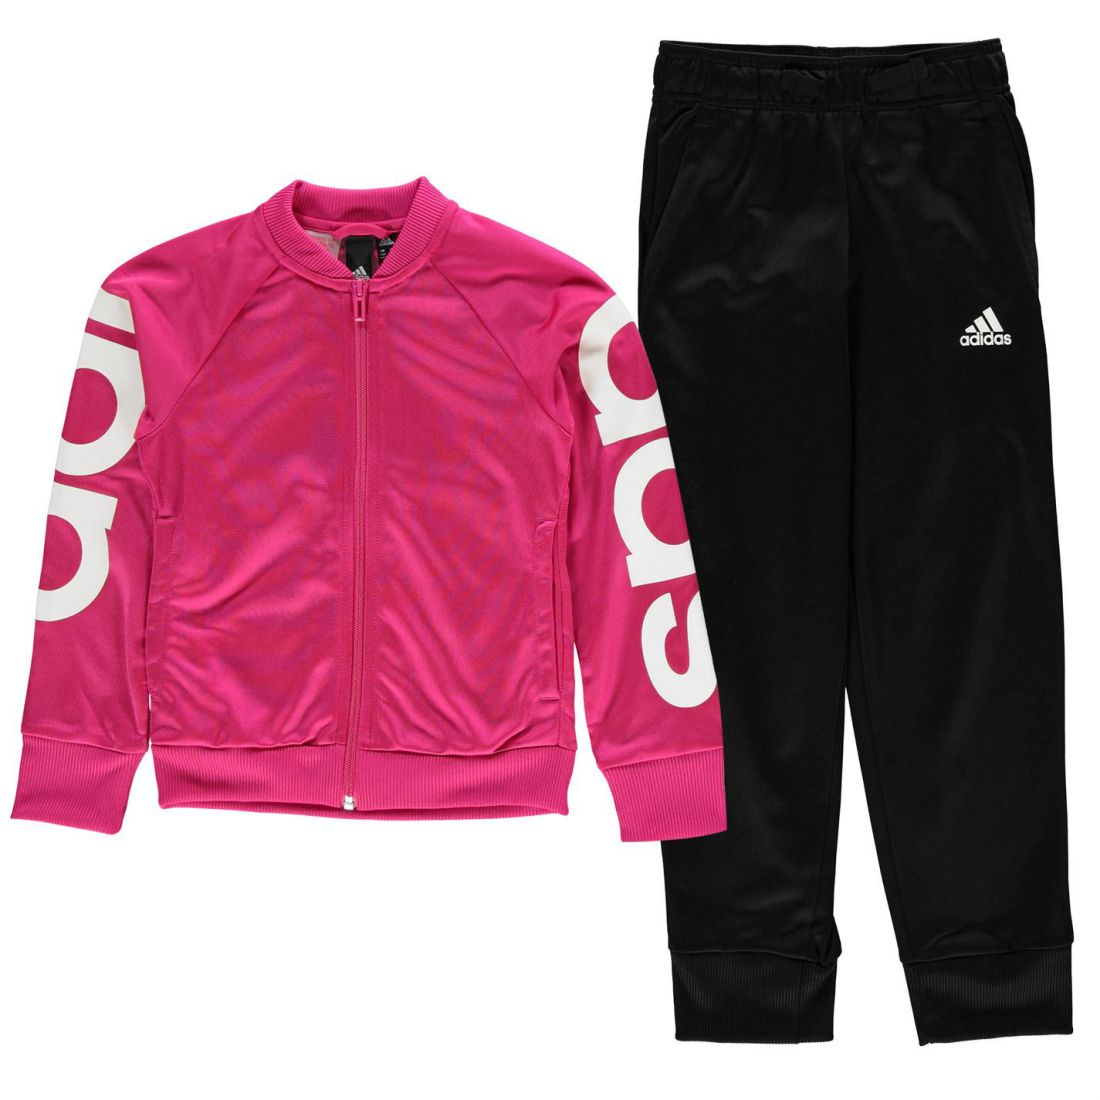 9f5693d3c2 adidas Poly Tracksuit Youngster Girls Full Length Sleeve Lightweight Zip  Zipped